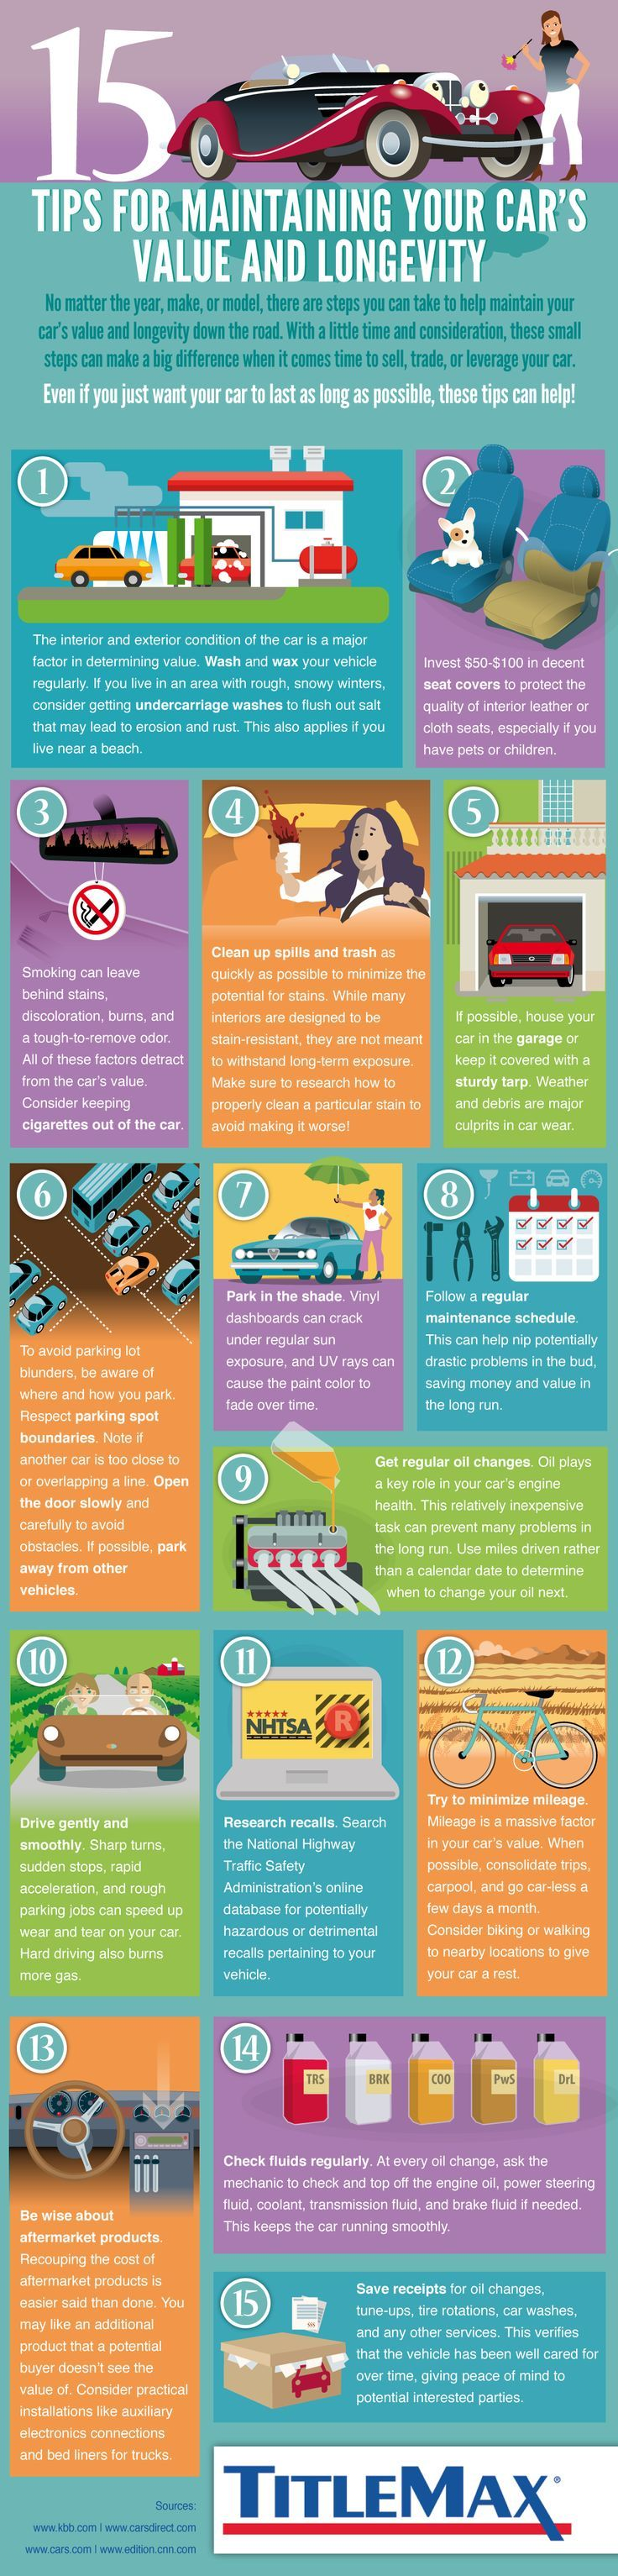 93 best saving money on car costs images on pinterest frugal tips 15 tips for maintaining your cars value and longevity infographic fandeluxe Choice Image